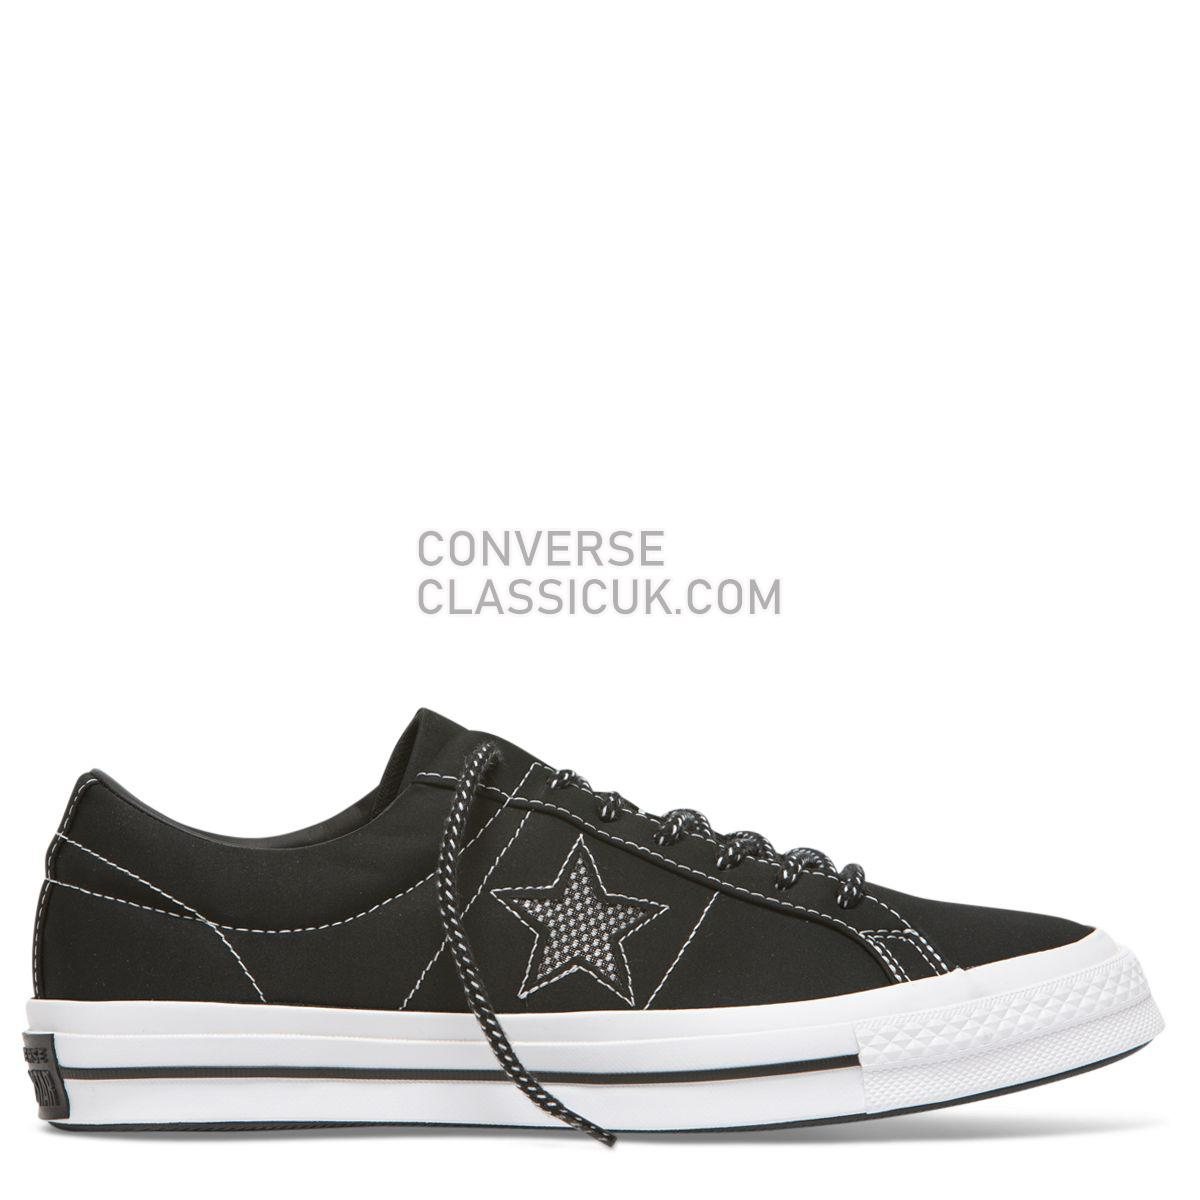 Converse One Star Get Tubed Low Top Black Mens Womens Unisex 164221 Black/White/Fresh Yellow Shoes